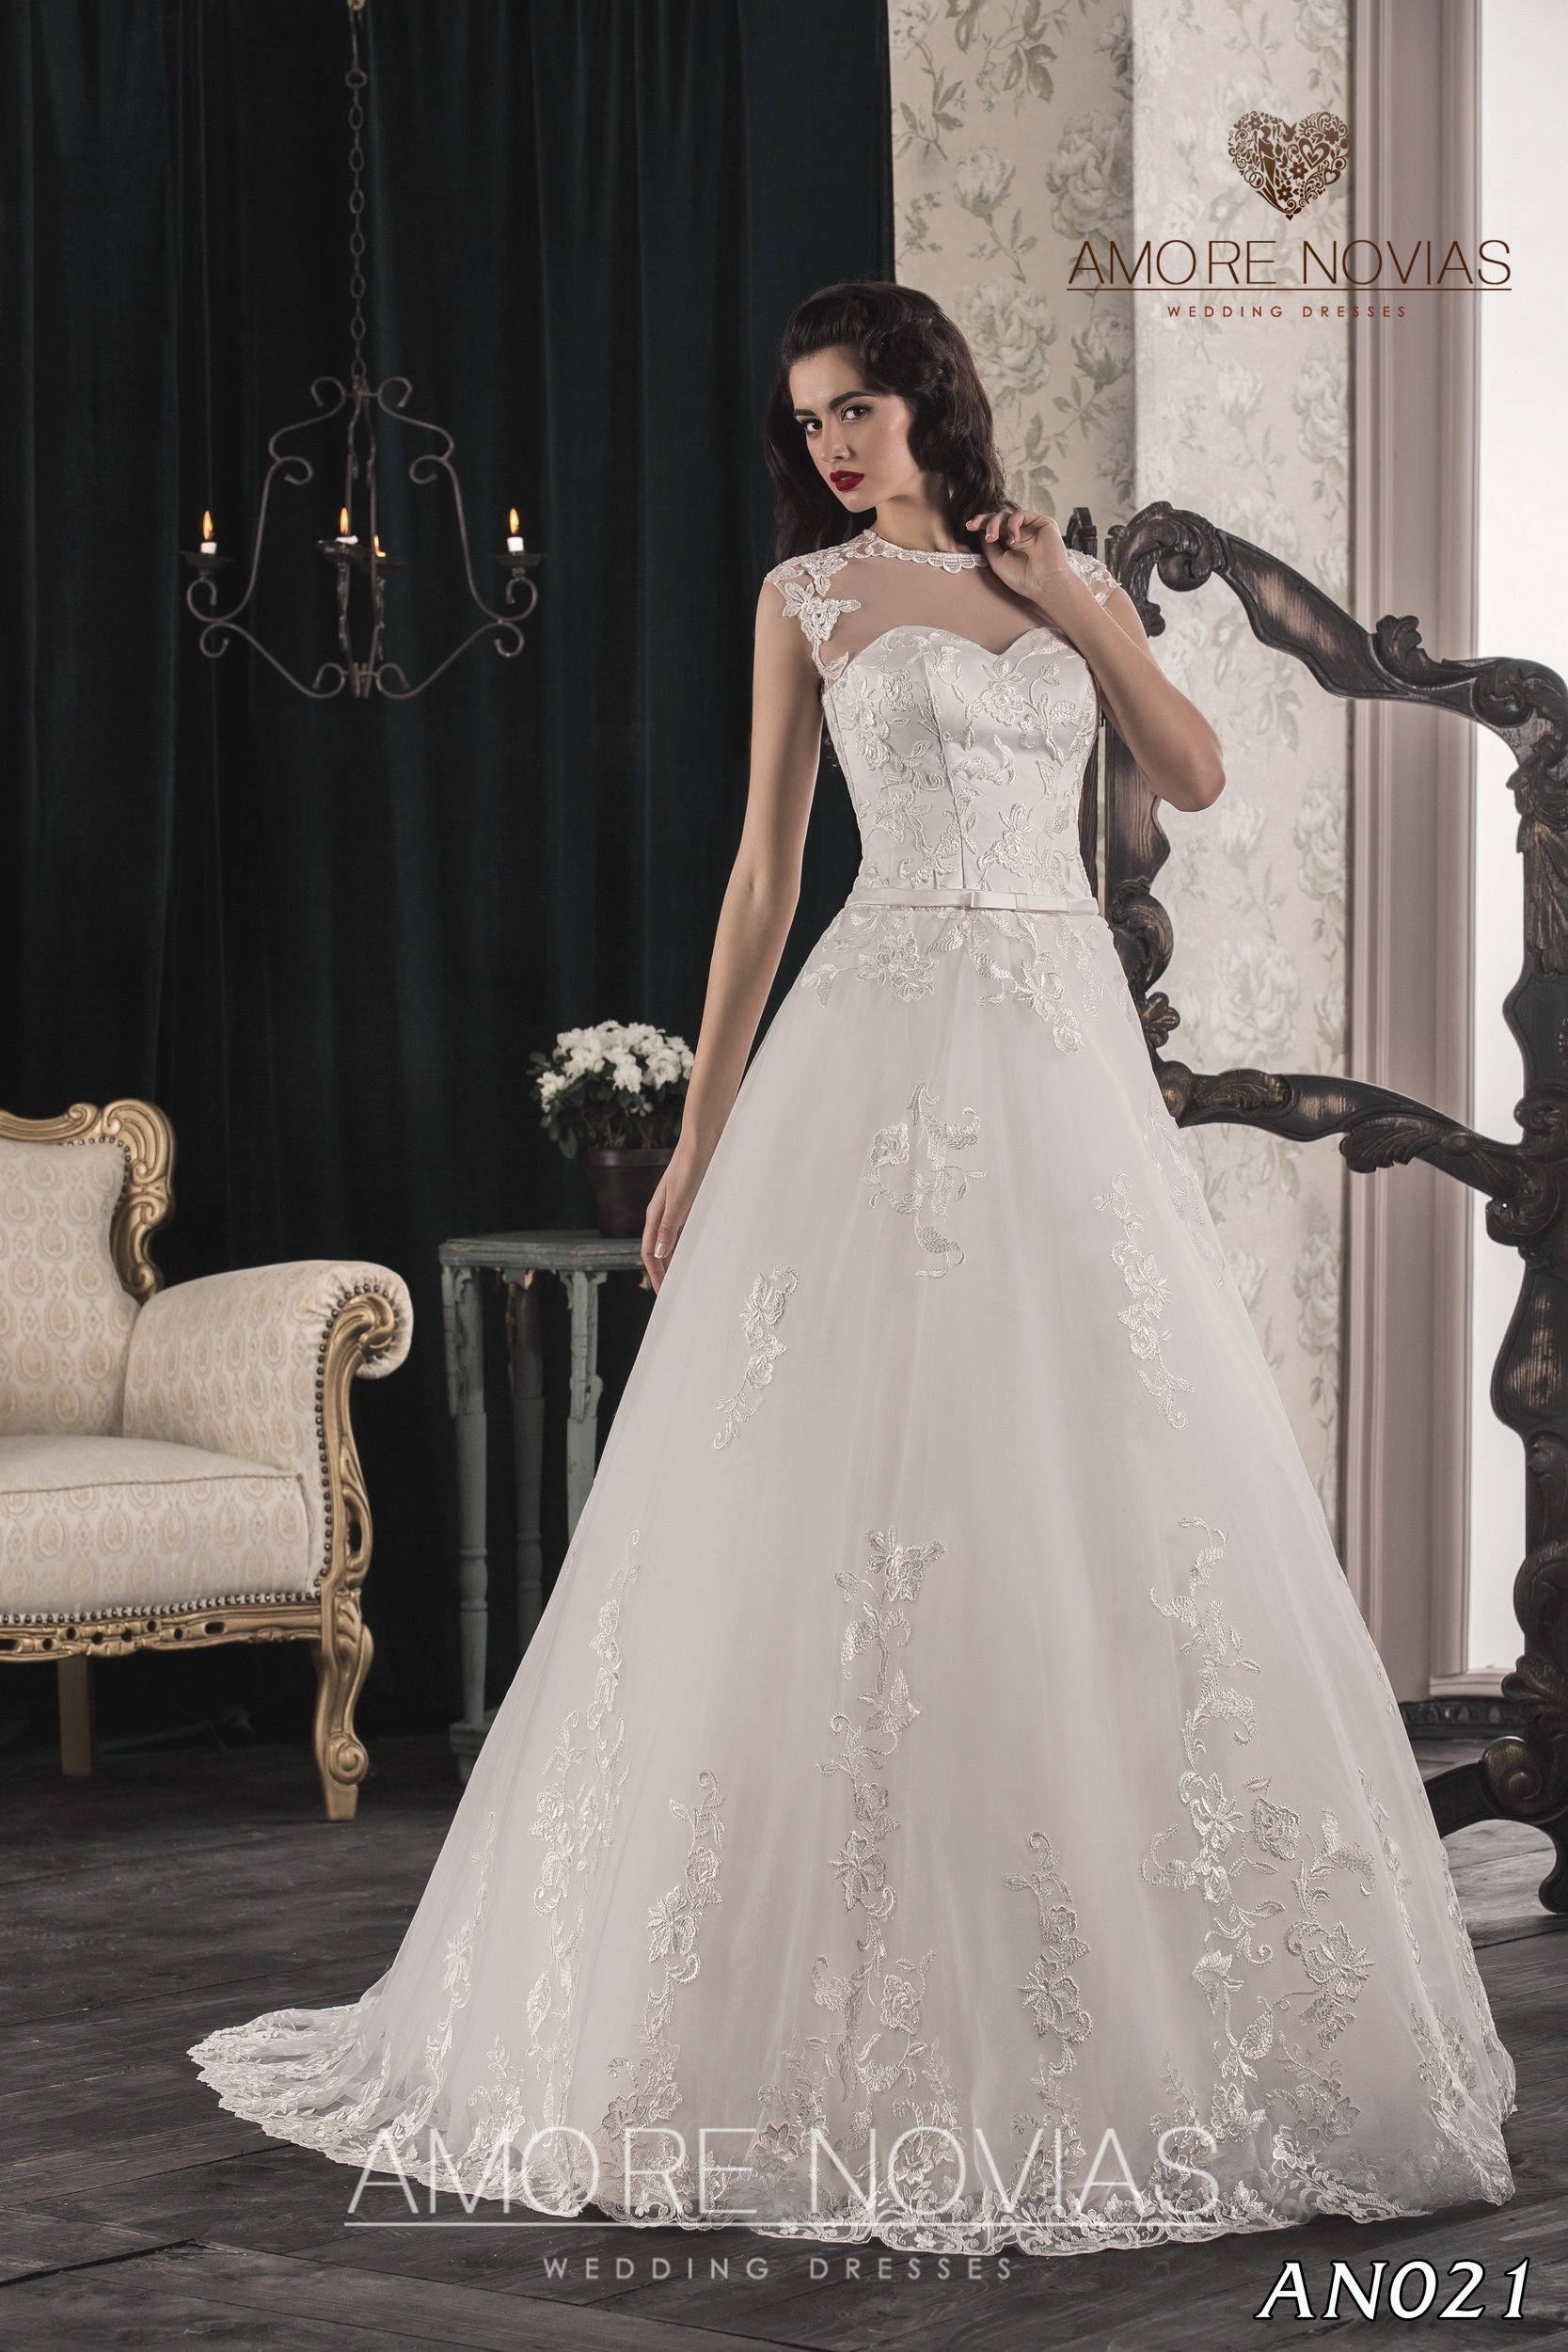 https://amore-novias.com/images/stories/virtuemart/product/an021.jpg